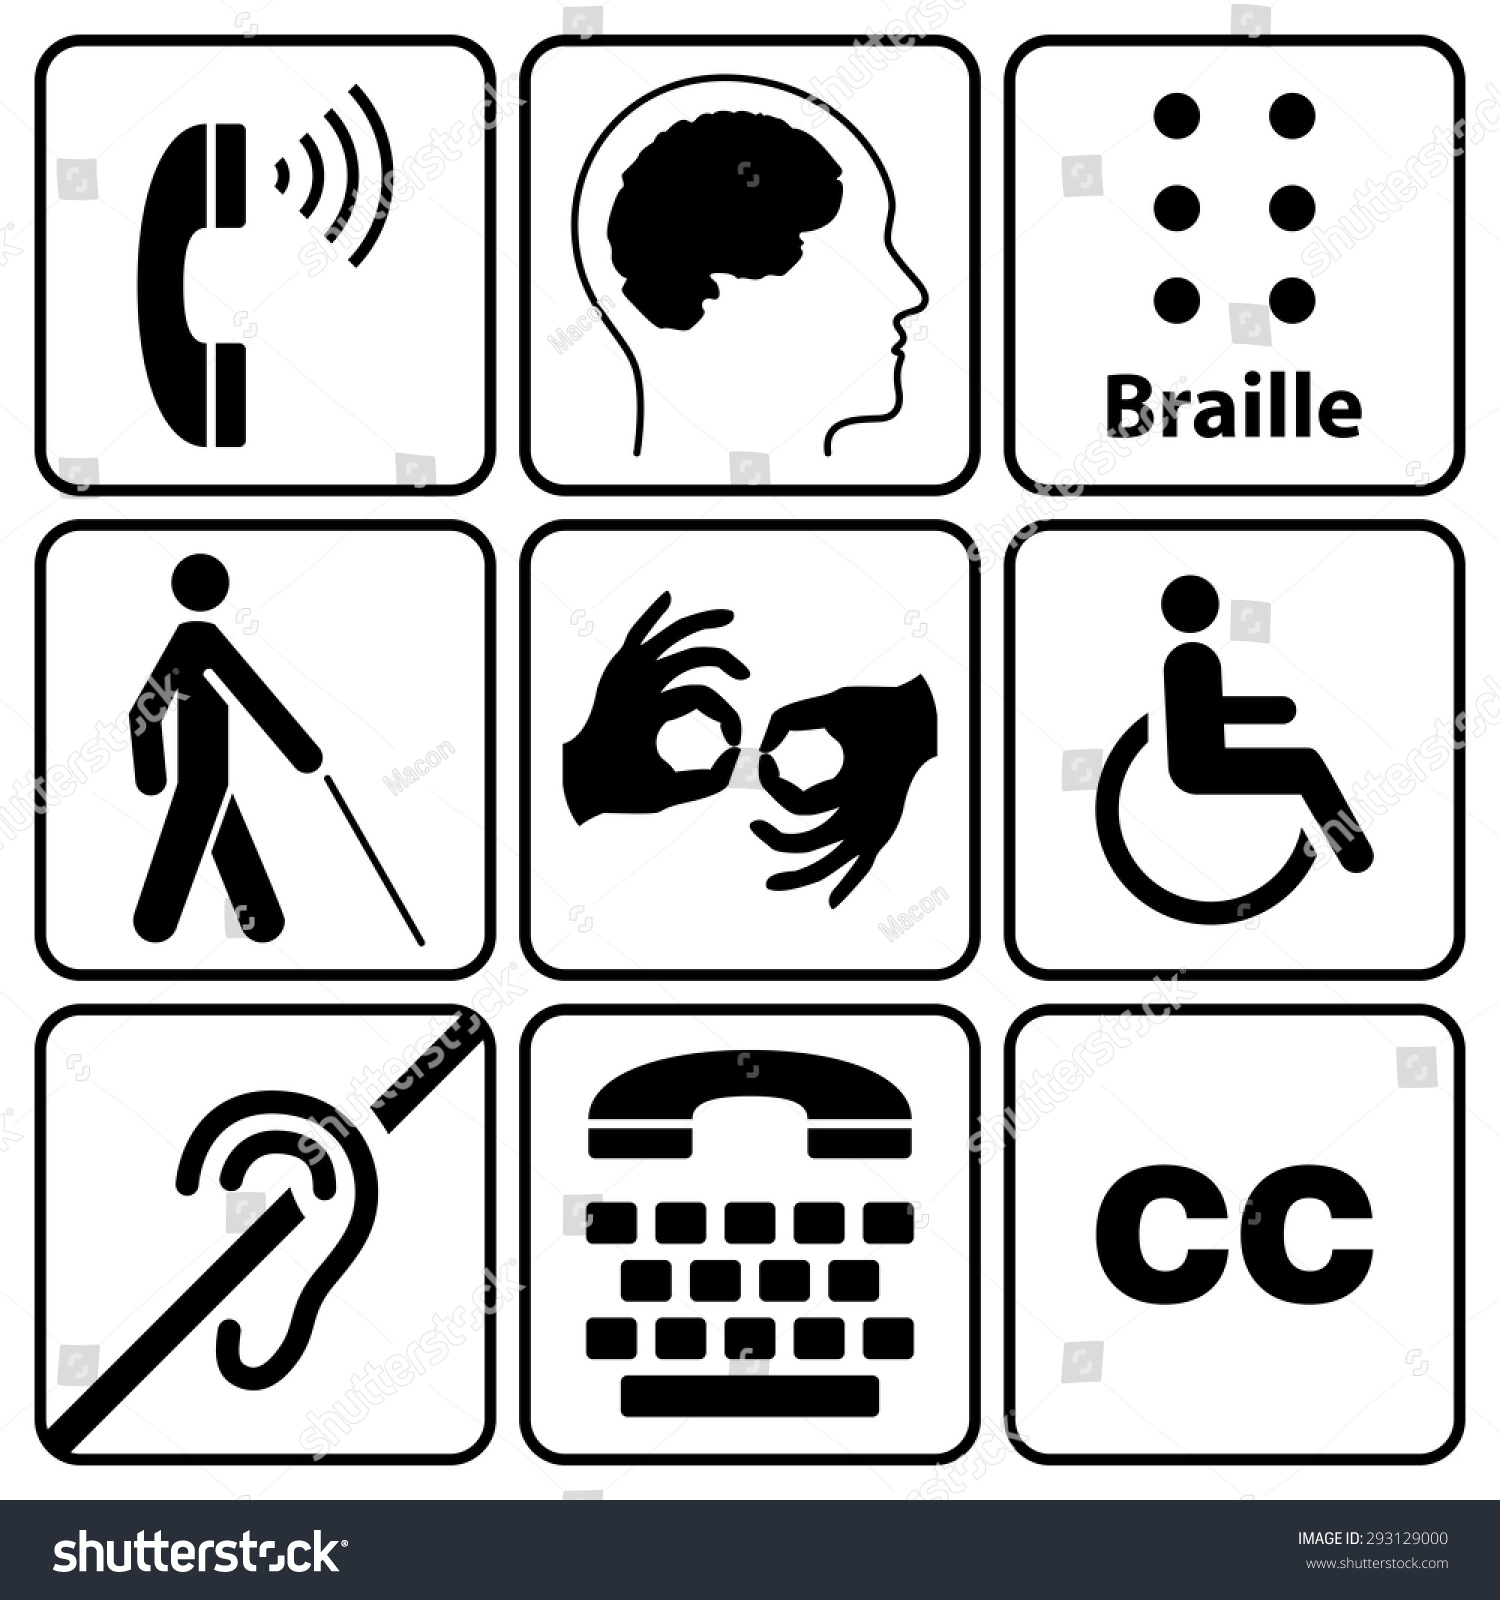 Black disability symbols signs collection may stock vector black disability symbols and signs collection may be used to publicize accessibility of places biocorpaavc